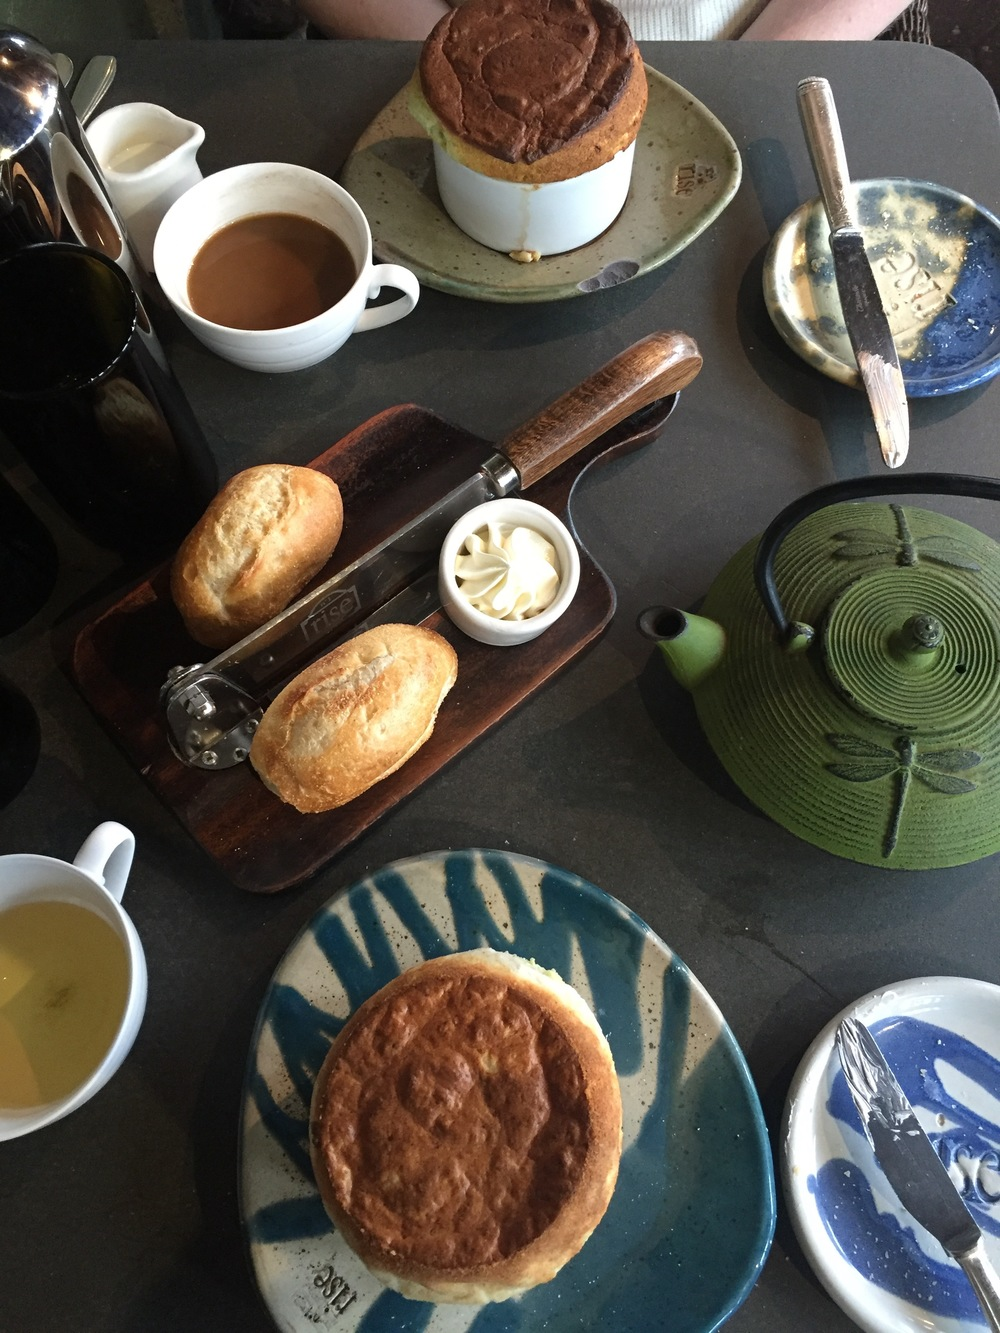 Bread, tea, coffee, and souffles? I think a better Saturday doesn't exist.